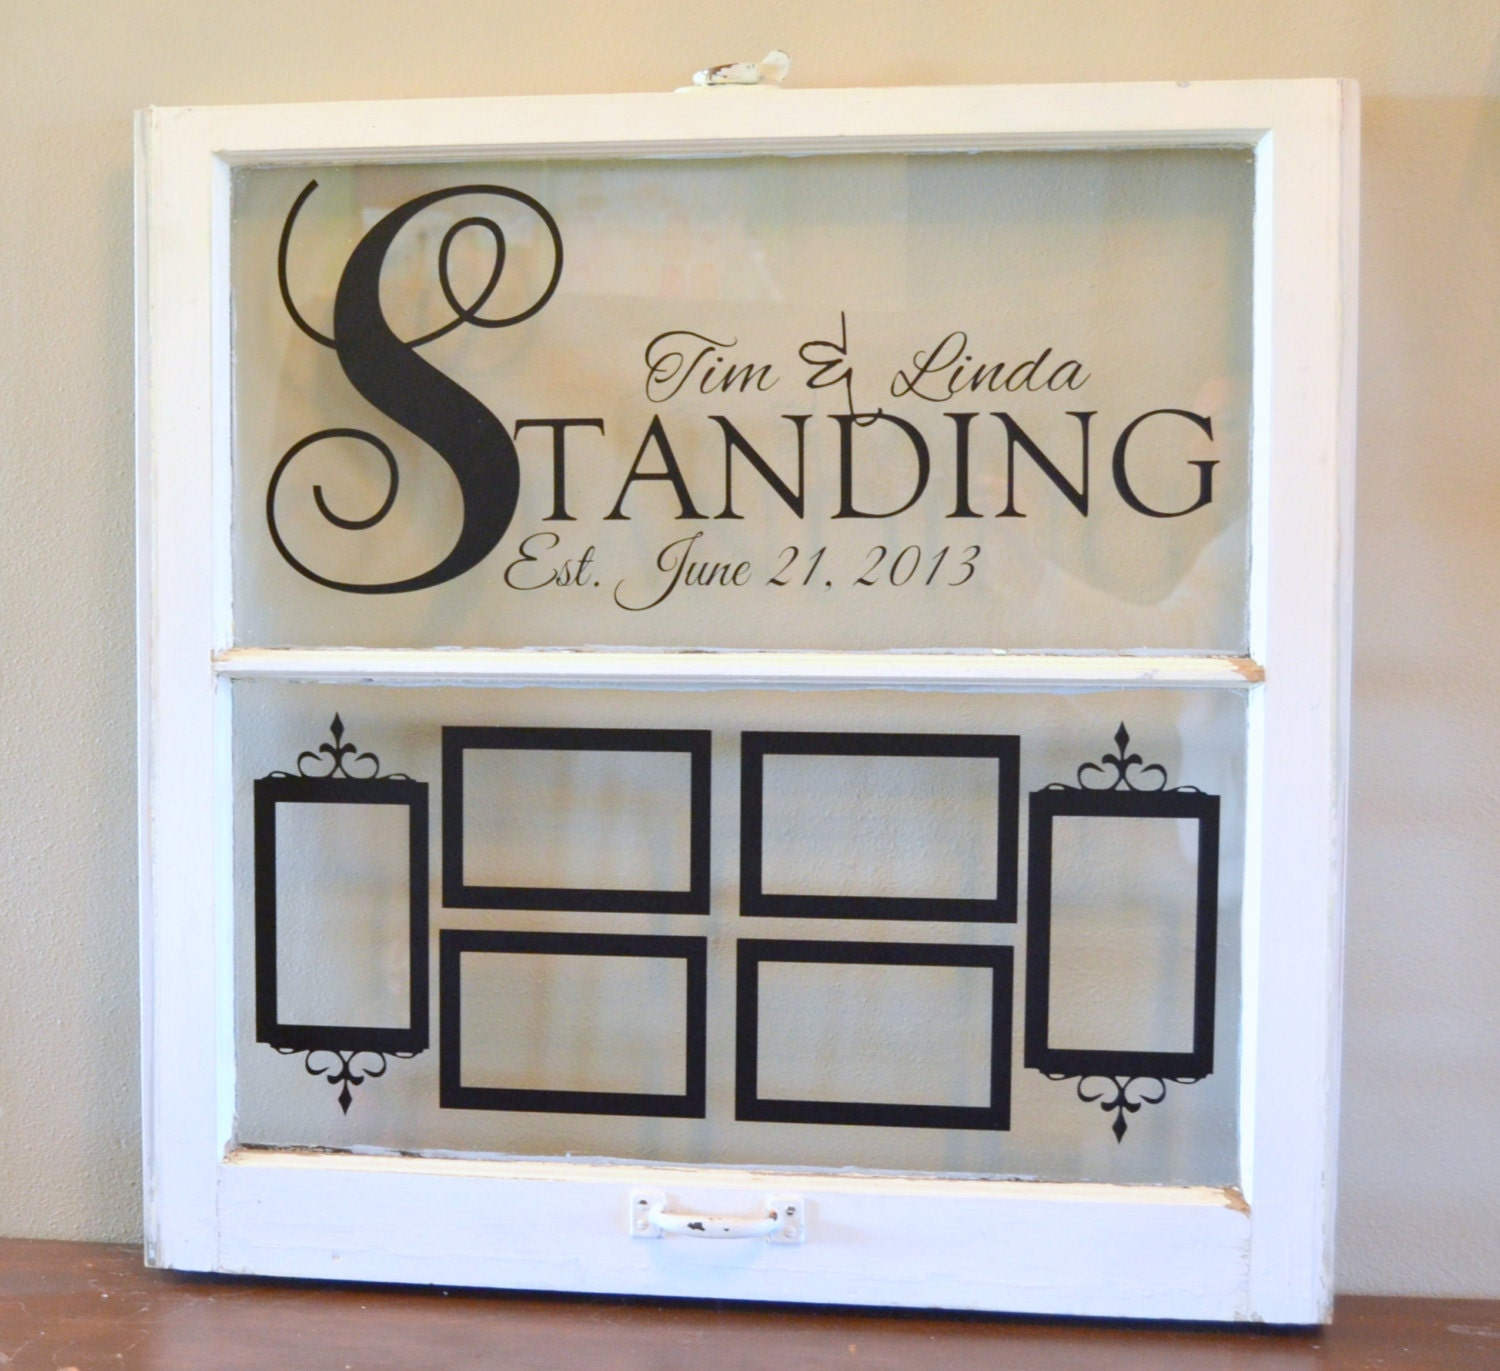 Antique Wedding Anniversary Gifts: Personalized Antique Window For Wedding Gift Anniversary-with